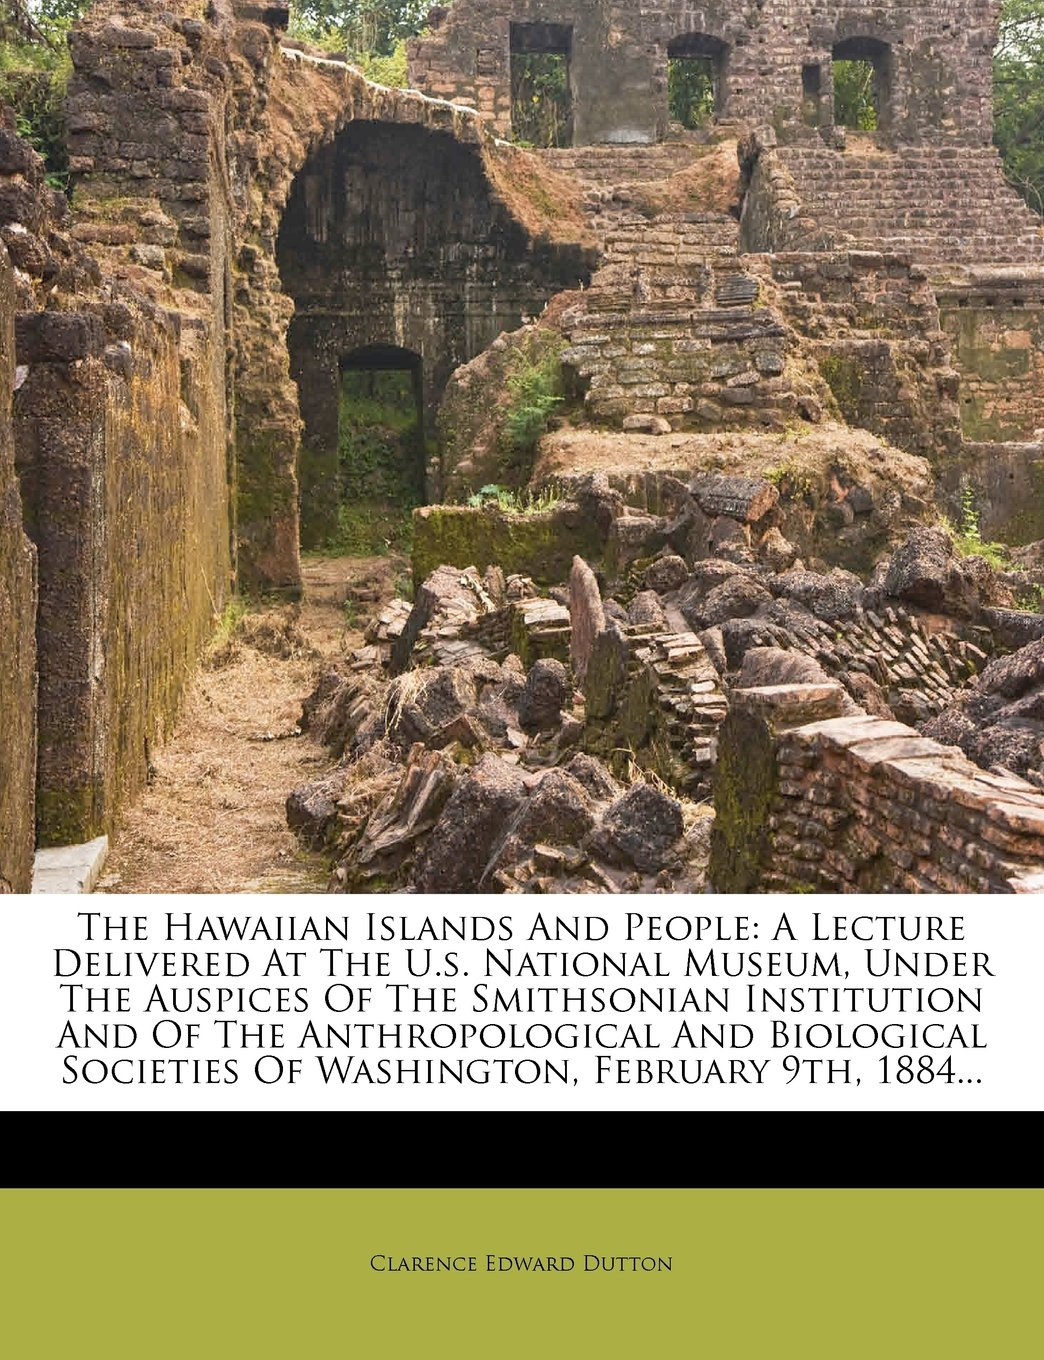 Read Online The Hawaiian Islands And People: A Lecture Delivered At The U.s. National Museum, Under The Auspices Of The Smithsonian Institution And Of The ... Of Washington, February 9th, 1884... ebook